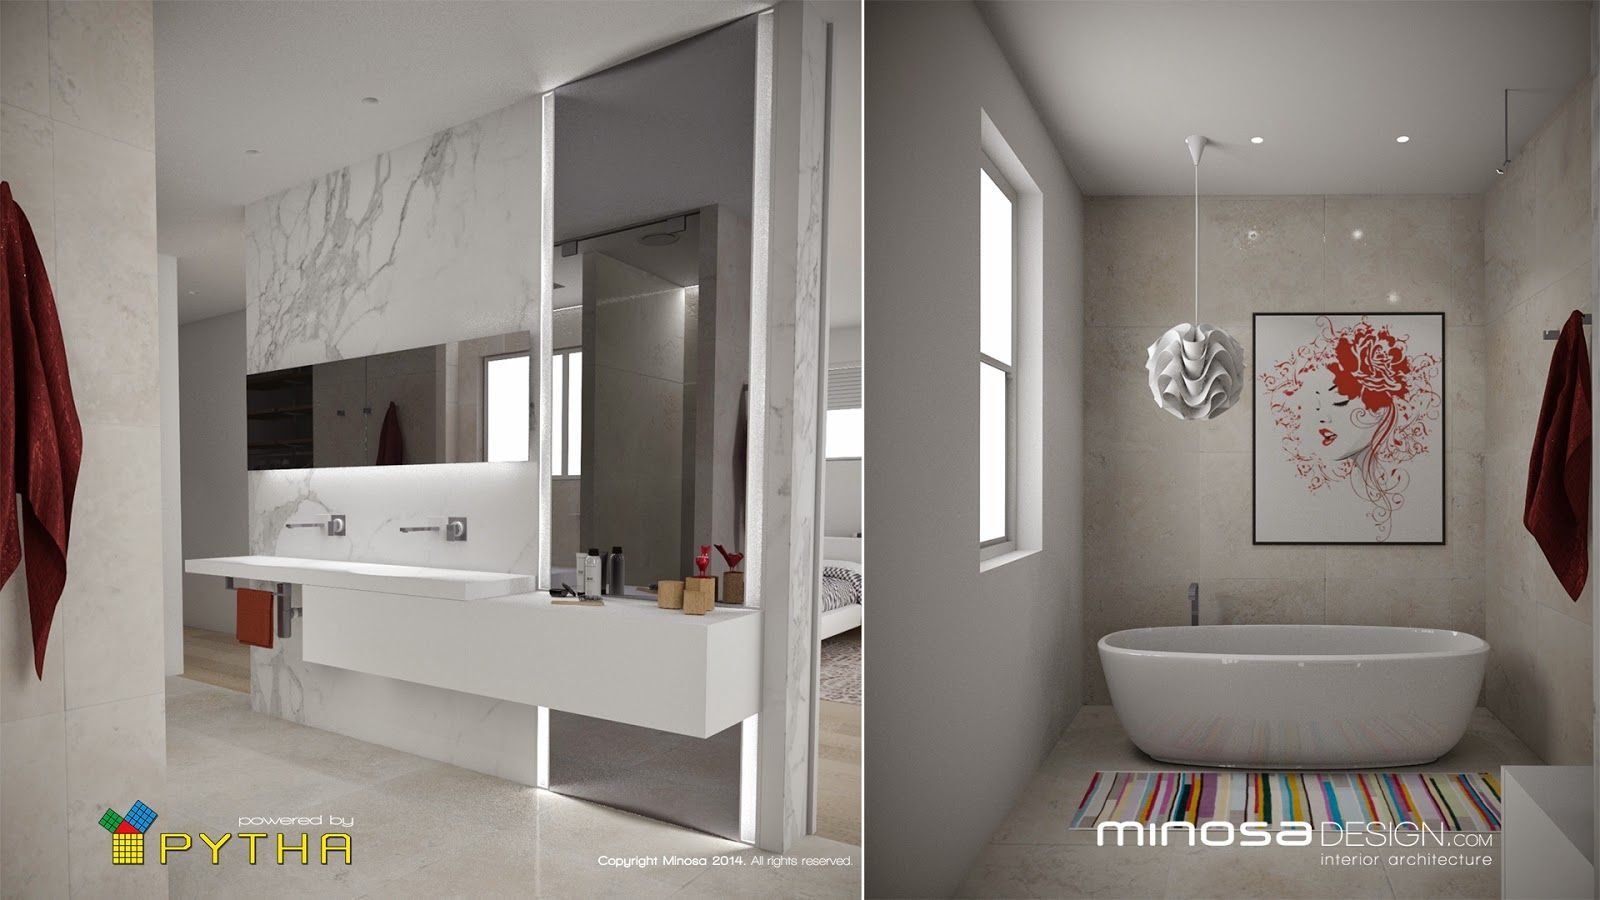 Wonderful Modern Kitchen And Bathroom Design Solutions.award Winning Design Studio  For The Kitchen U0026 Bathroom. Hand Made Bathroom Furniture